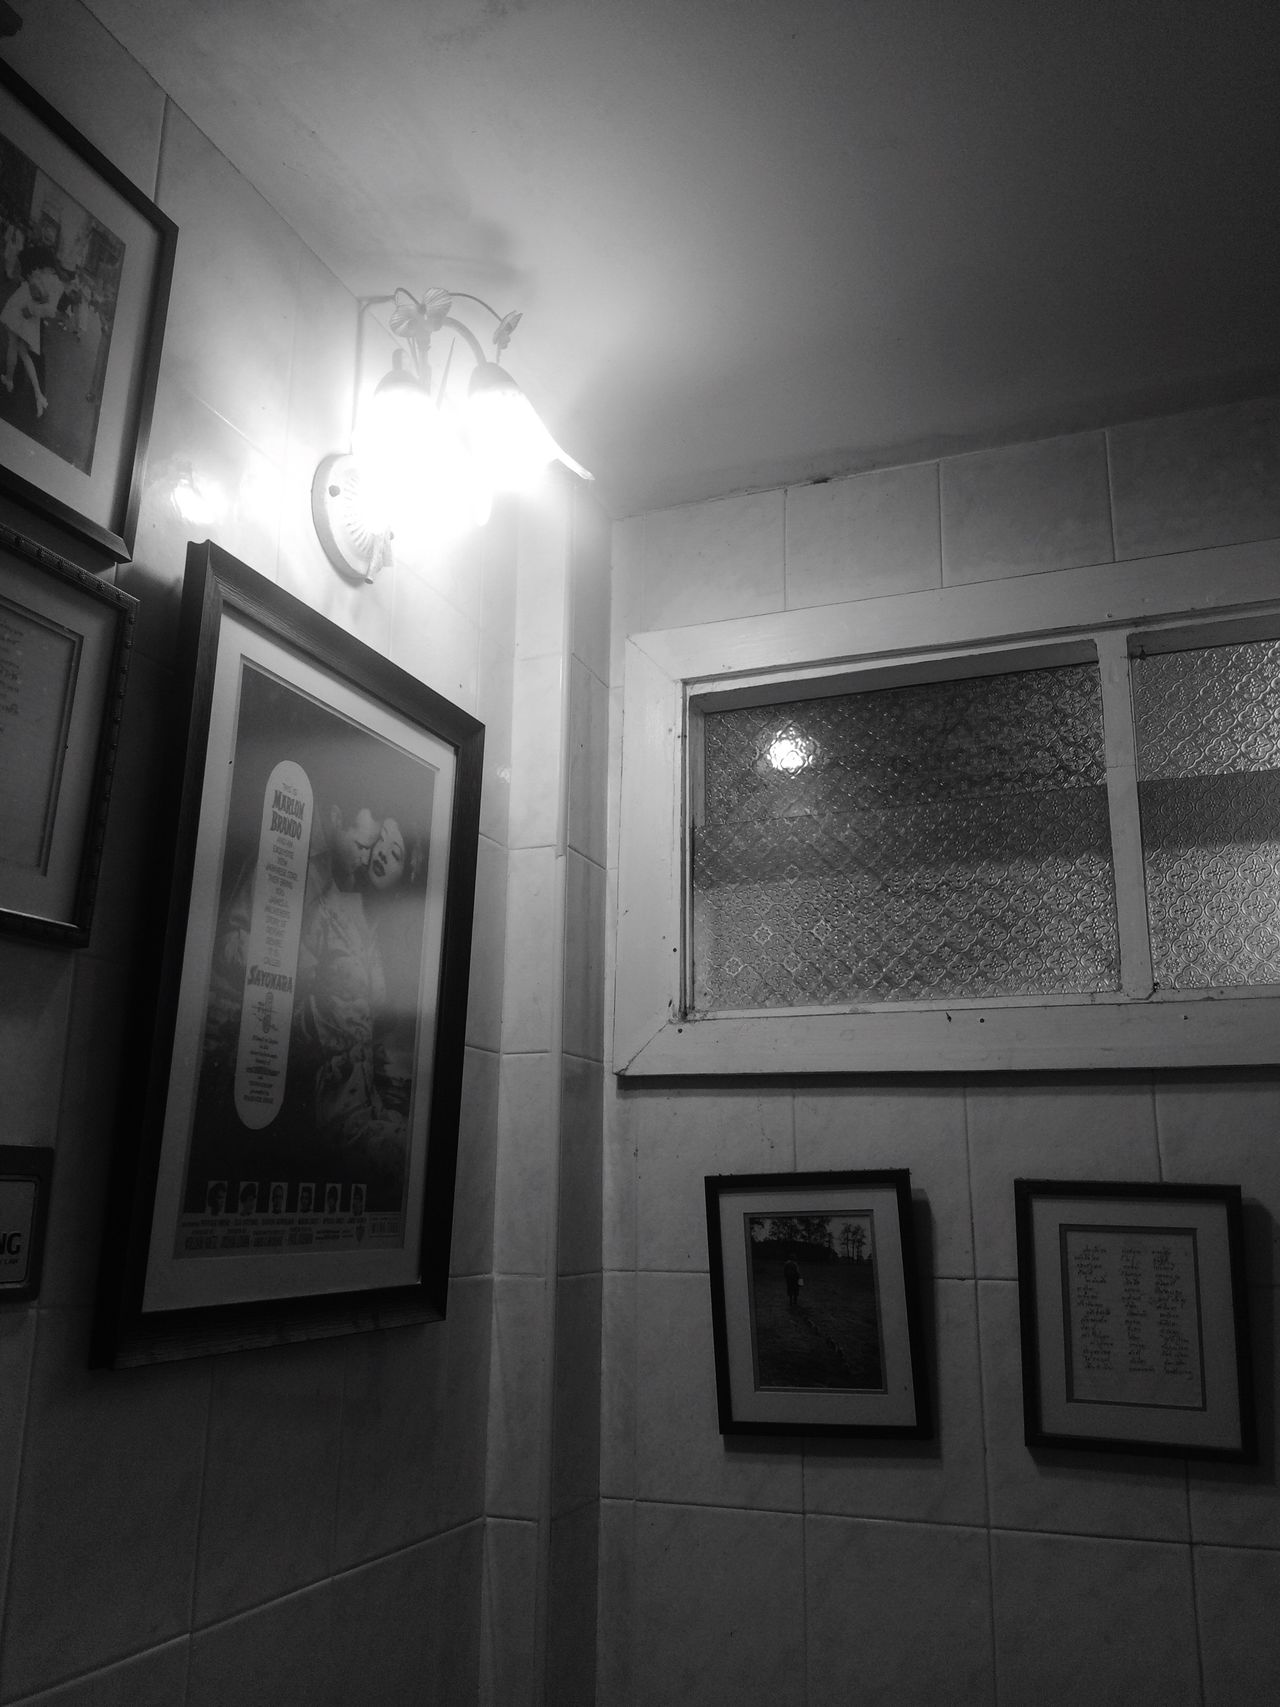 Picture Frame Lighting Equipment Illuminated Indoors  No People Low Angle View Architecture Night Coffee Time Black & White Vintage Style Store Window